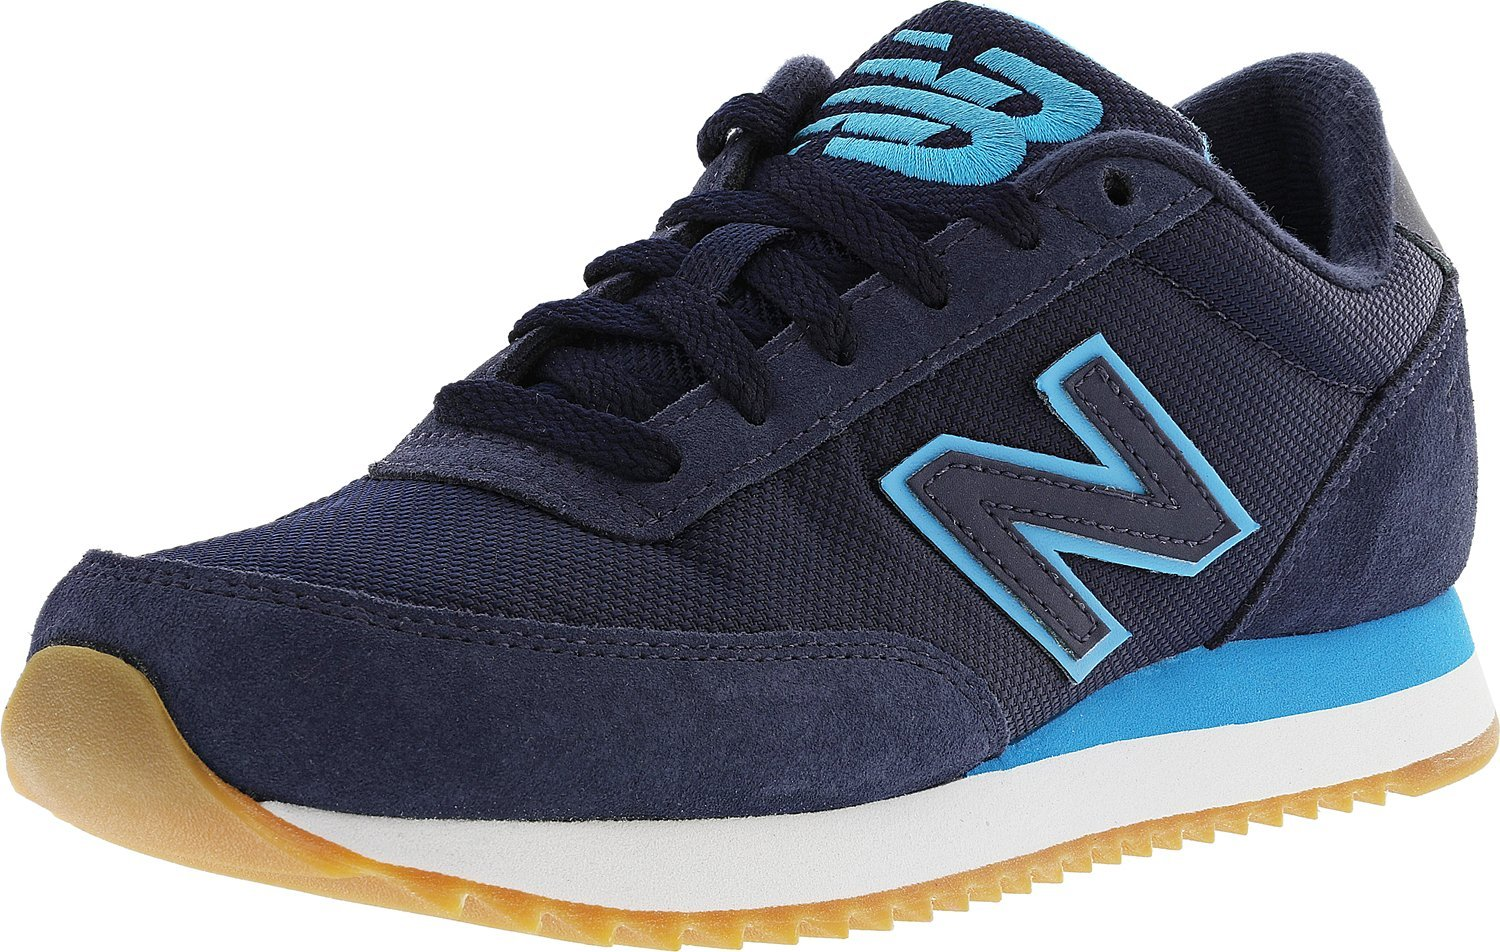 New Balance M730lg3 - Zapatillas de Running Hombre 8 D(M) US|Black/Impulse